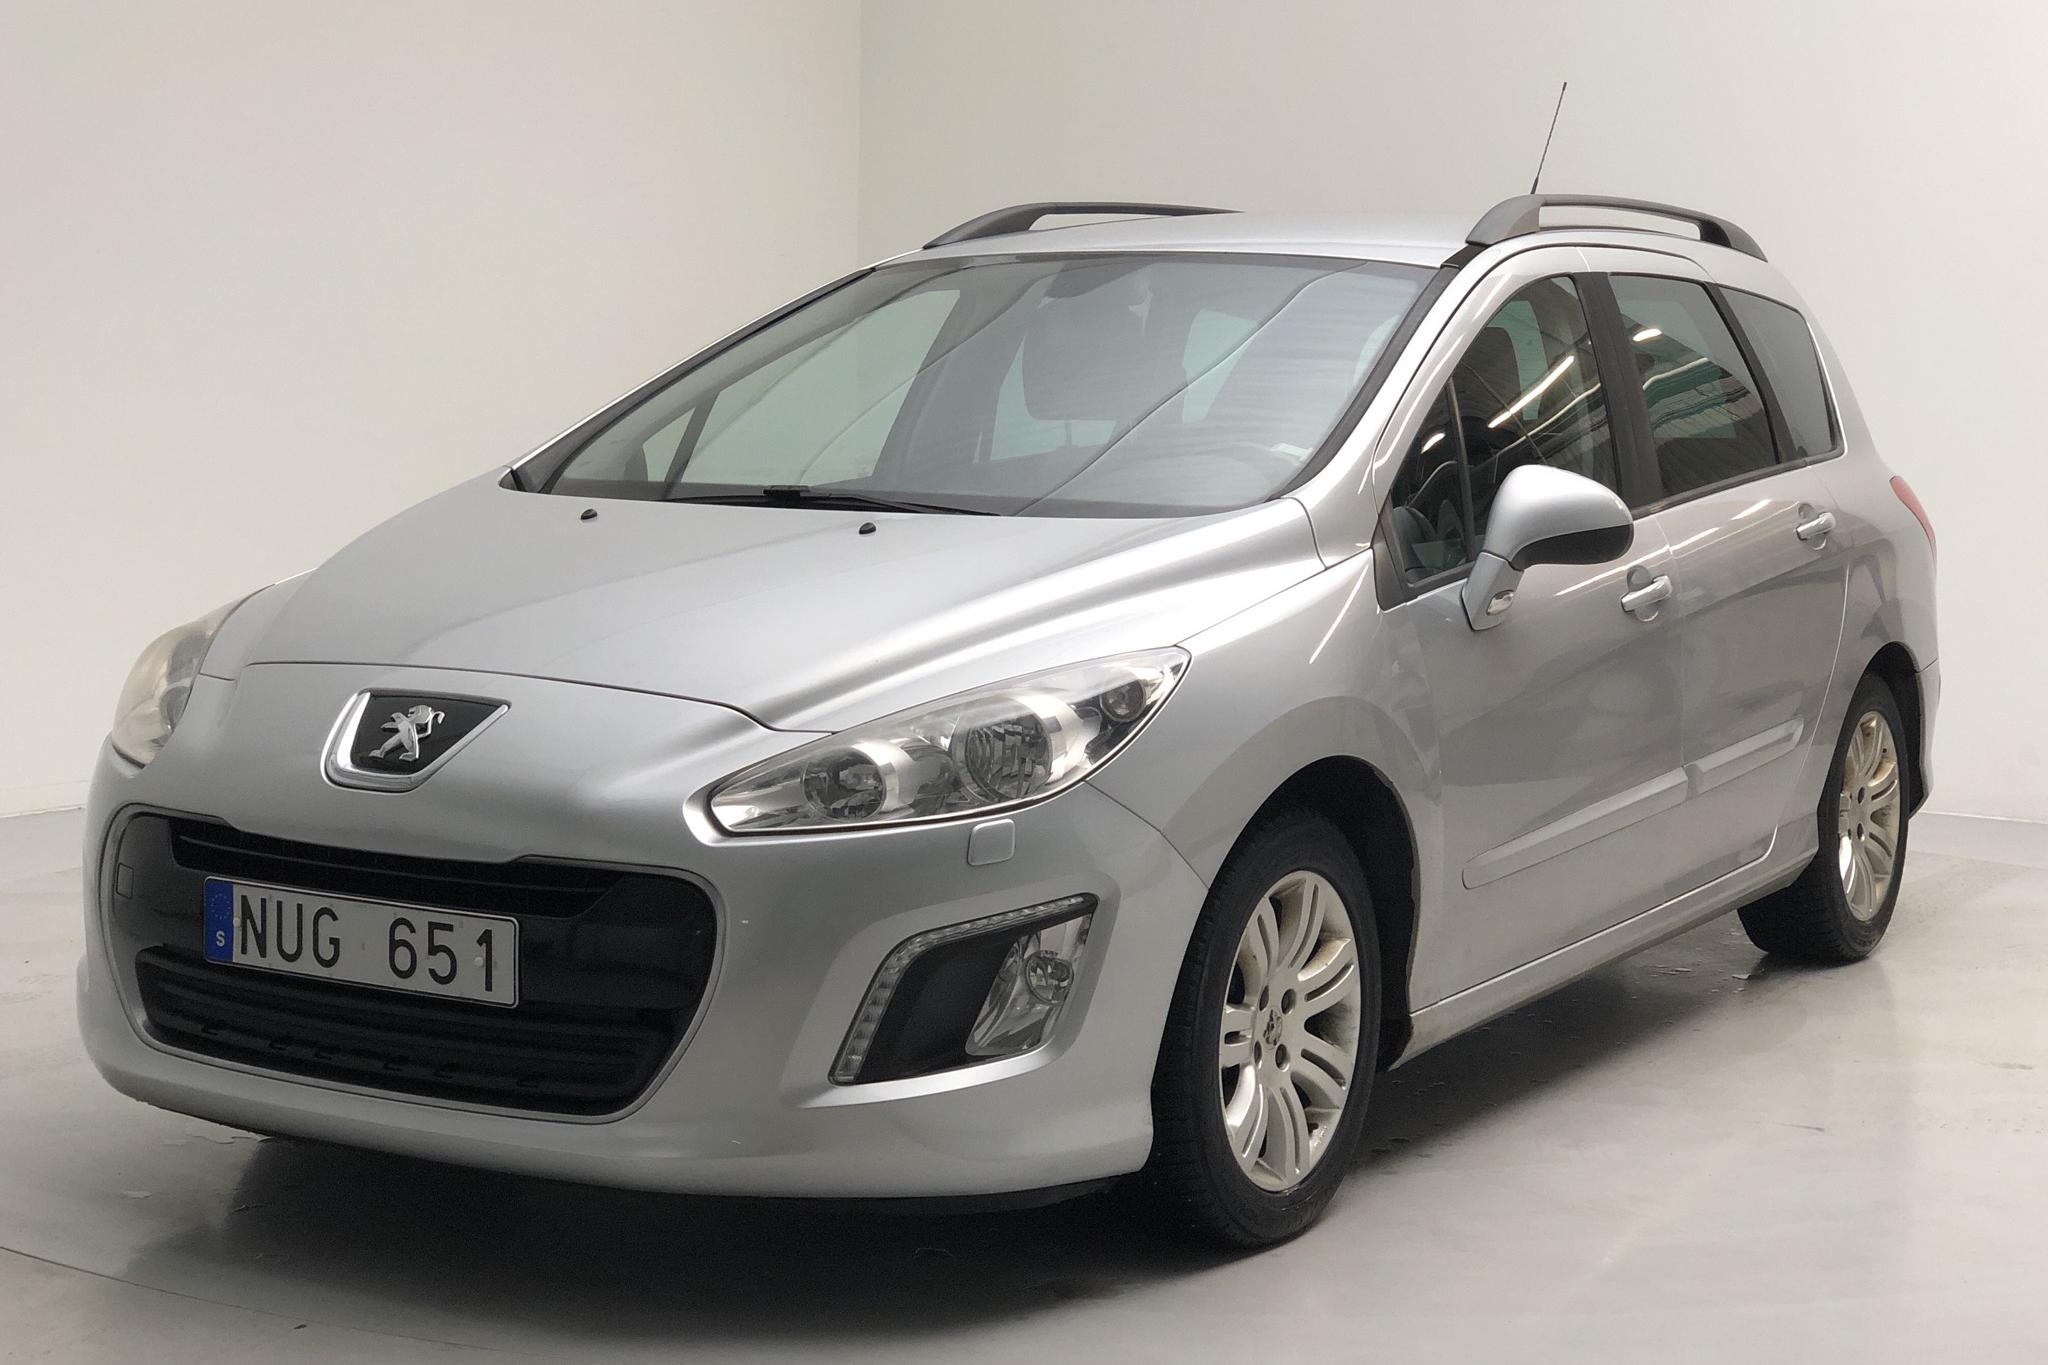 Peugeot 308 SW 1.6 e-HDi (112hk) - 14 742 mil - Manuell - Light Grey - 2012